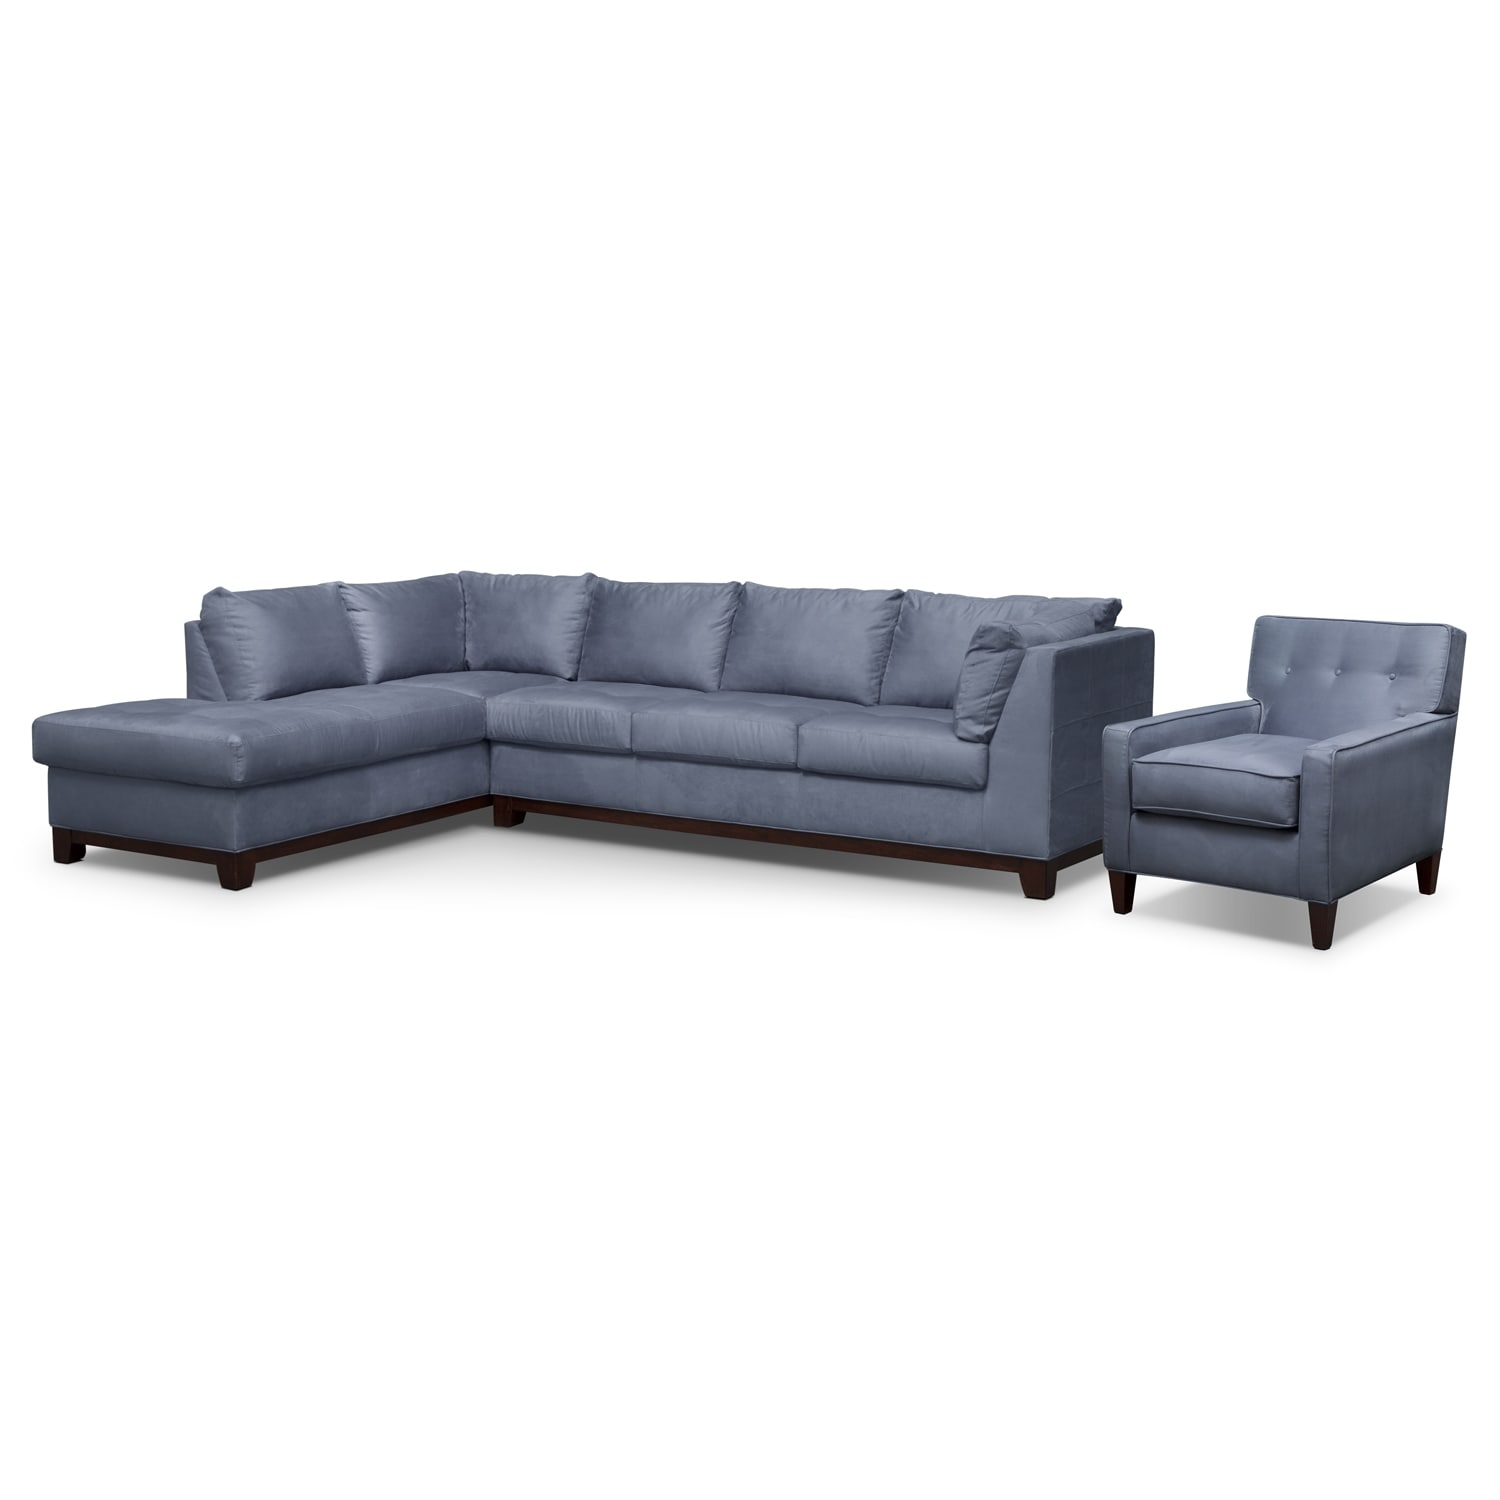 Soho 2-Piece Sectional with Left-Facing Chaise and Chair - Steel